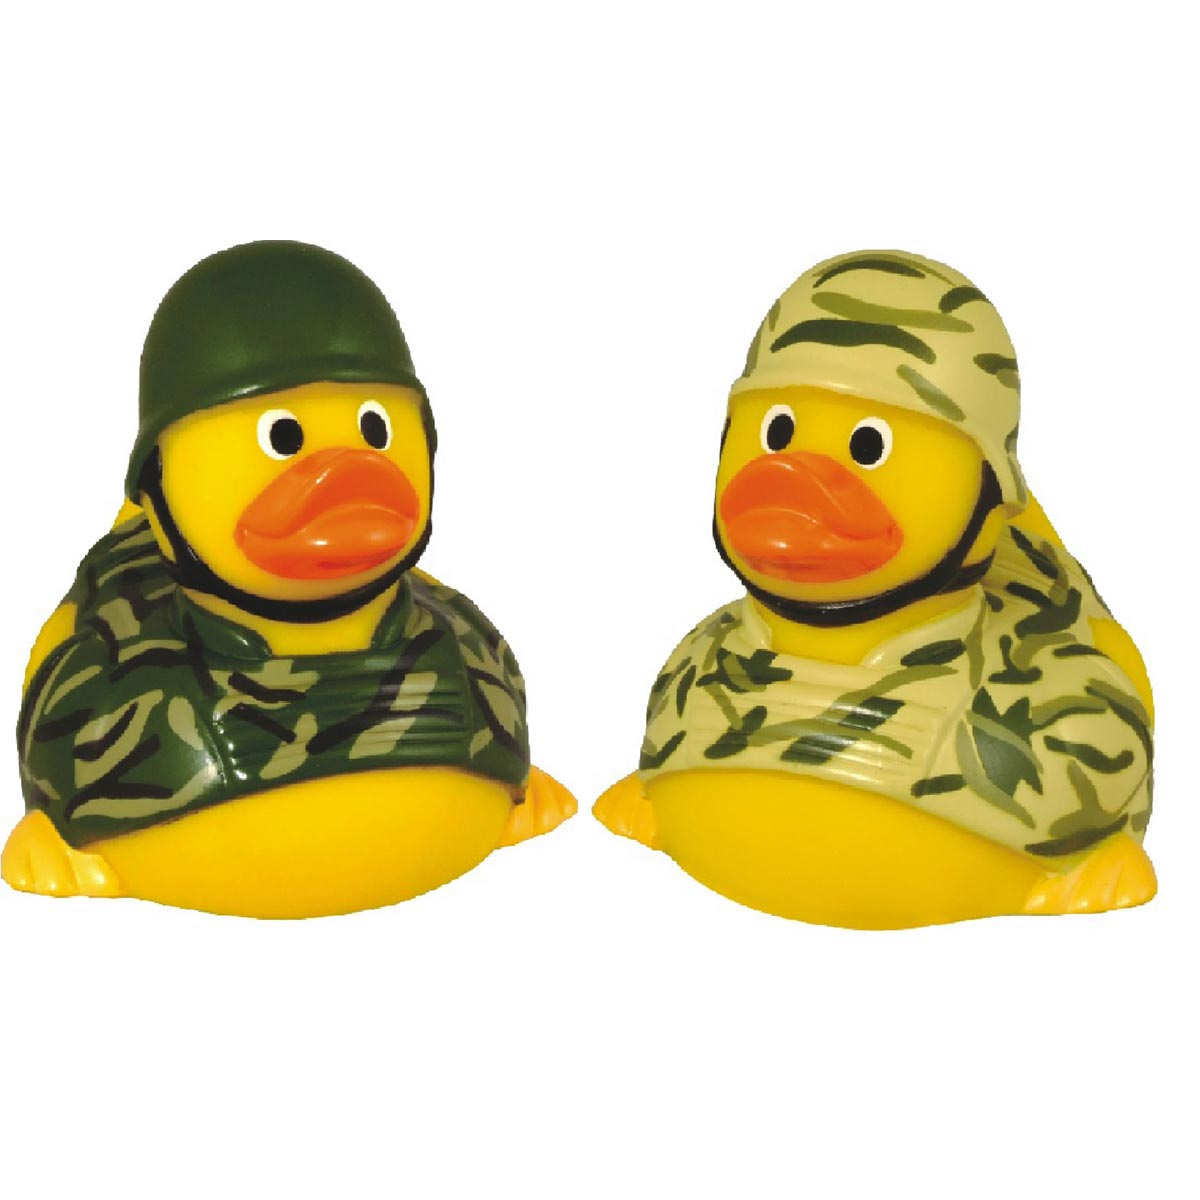 Rubber Soldier Duck Toy